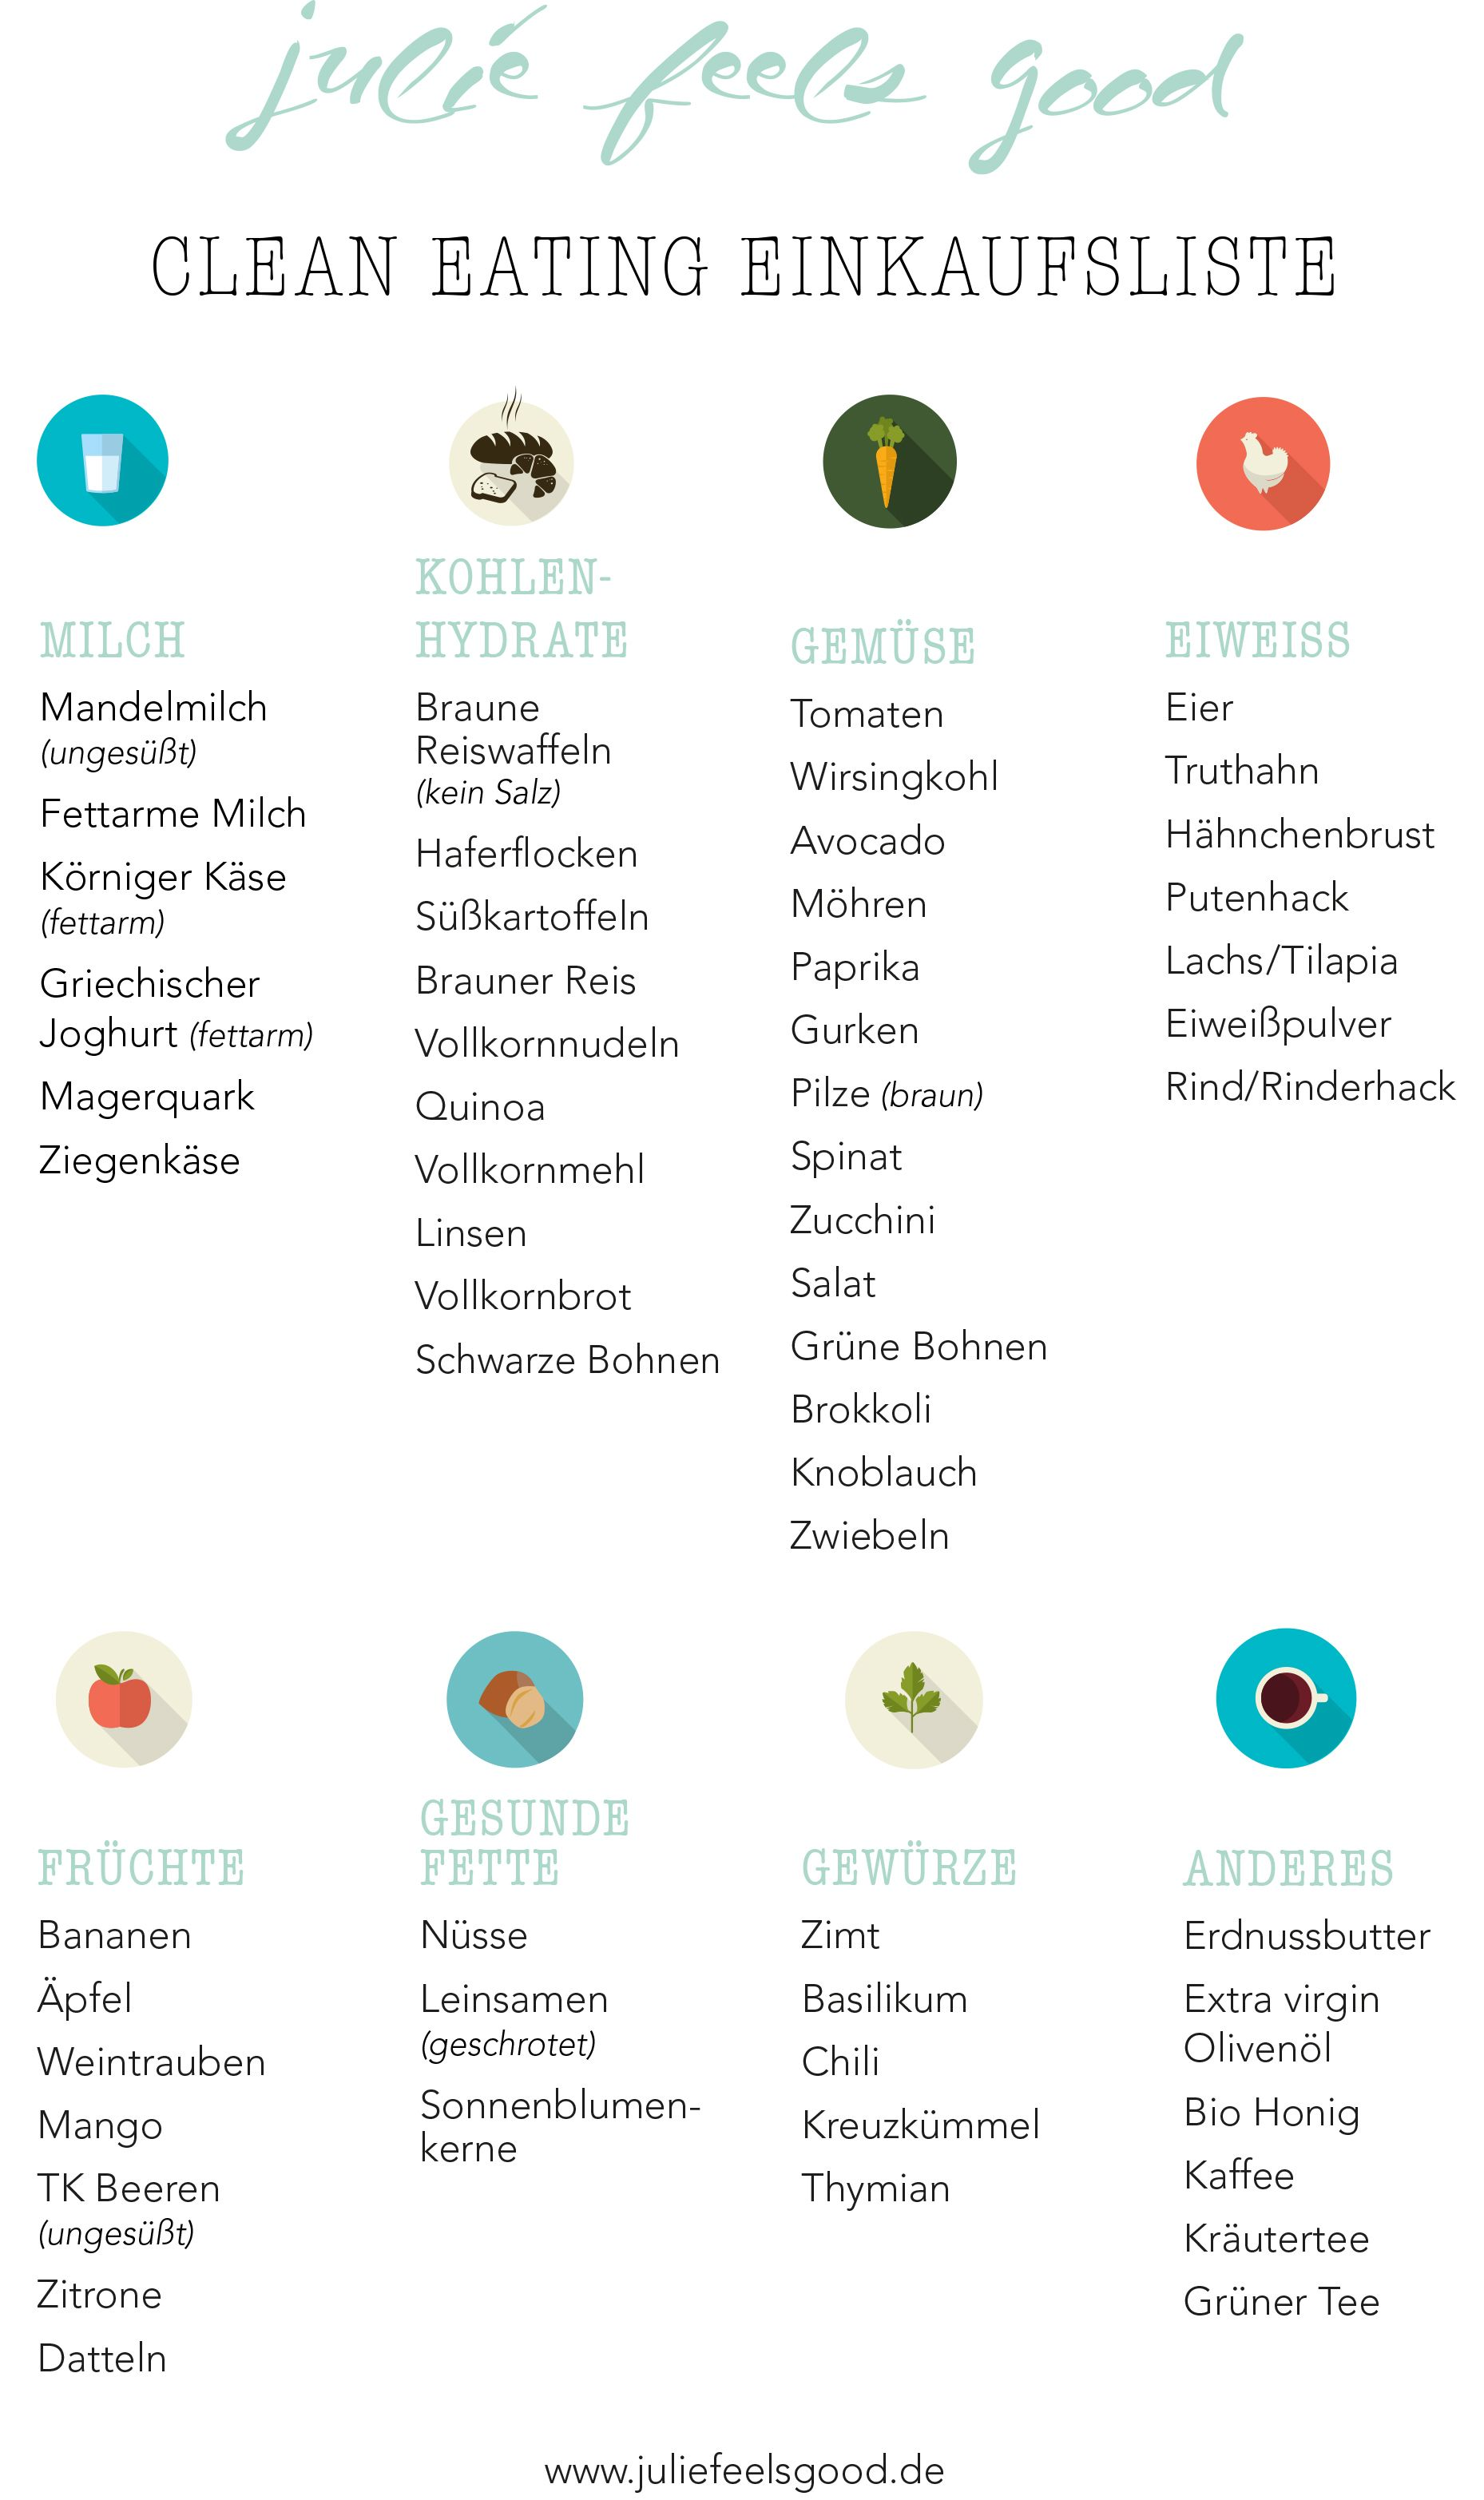 Clean Eating Einkaufsliste | Pinterest | Clean eating, Food and Low carb